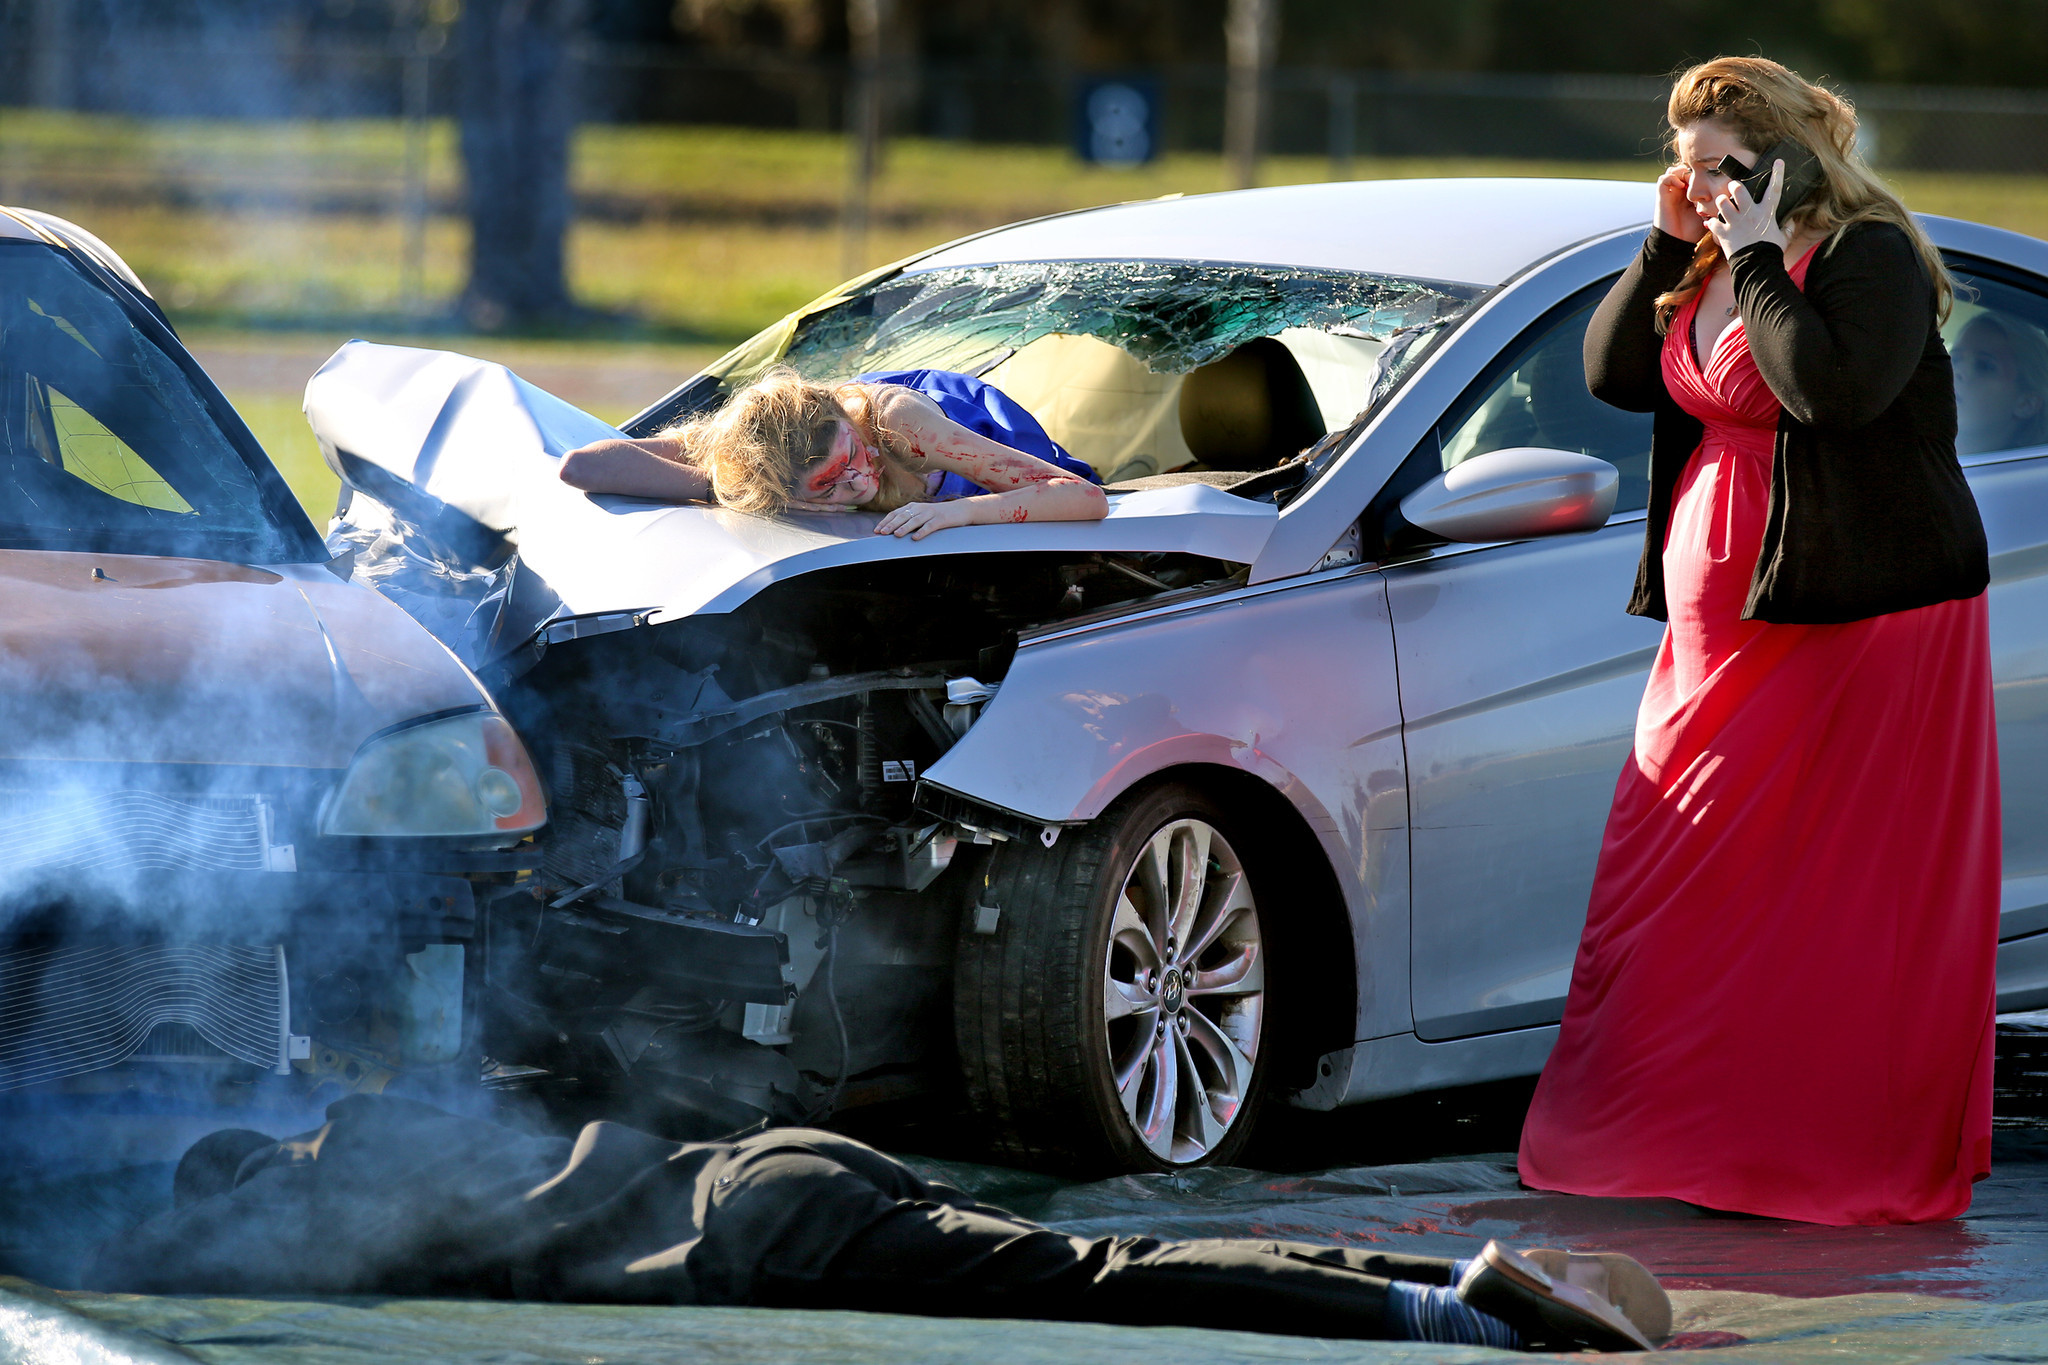 Driving School For Teens >> Coral Springs teens get a taste of how dangerous driving can ruin prom night - Sun Sentinel